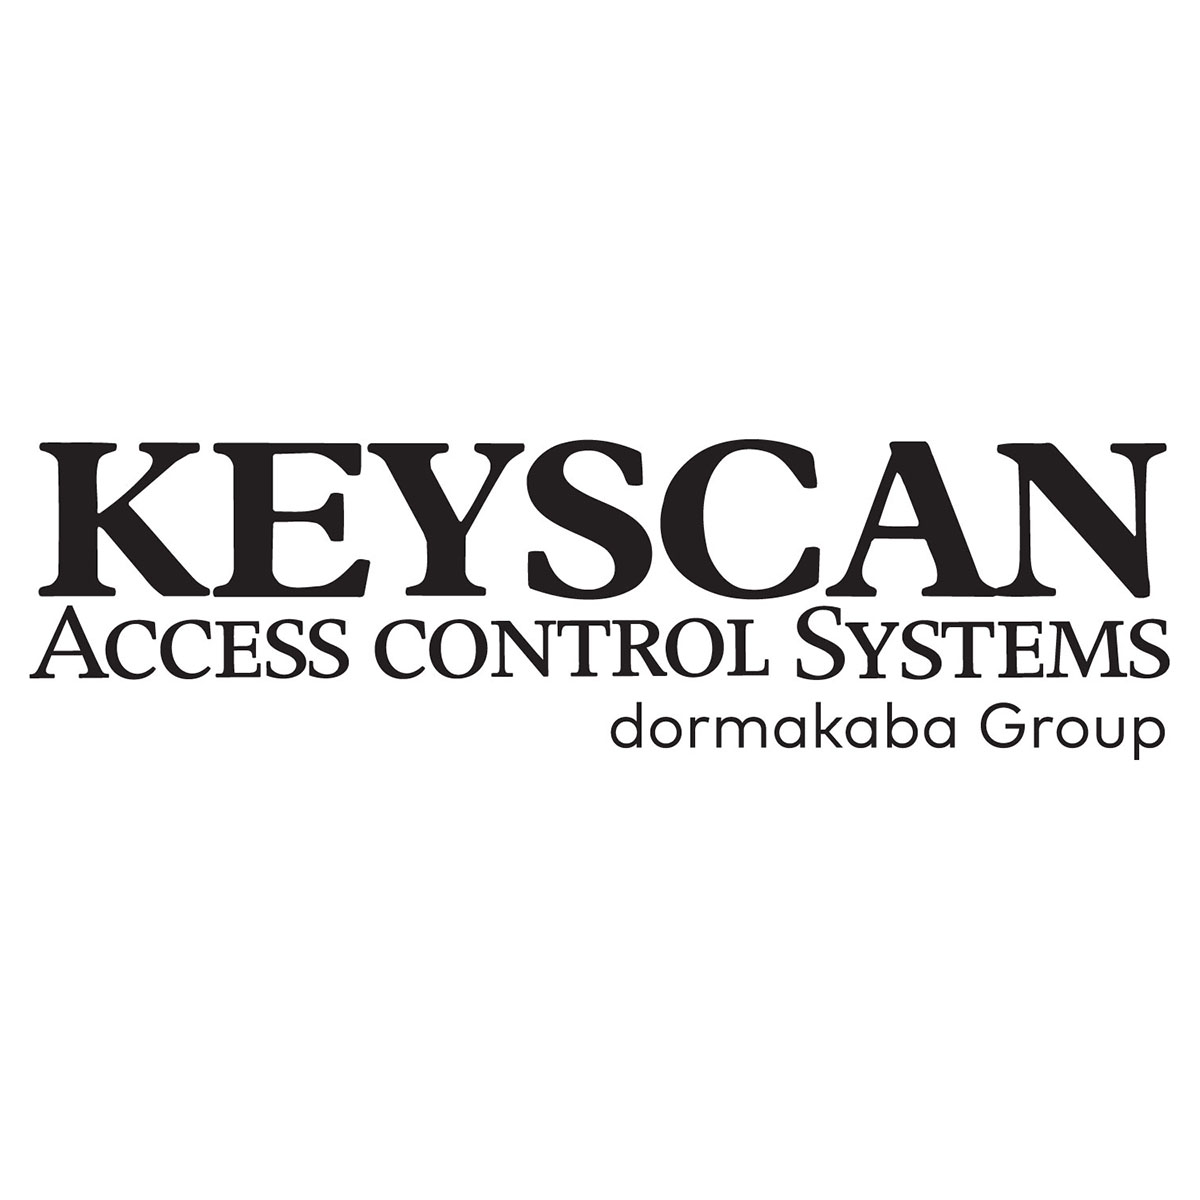 keyscan access control products